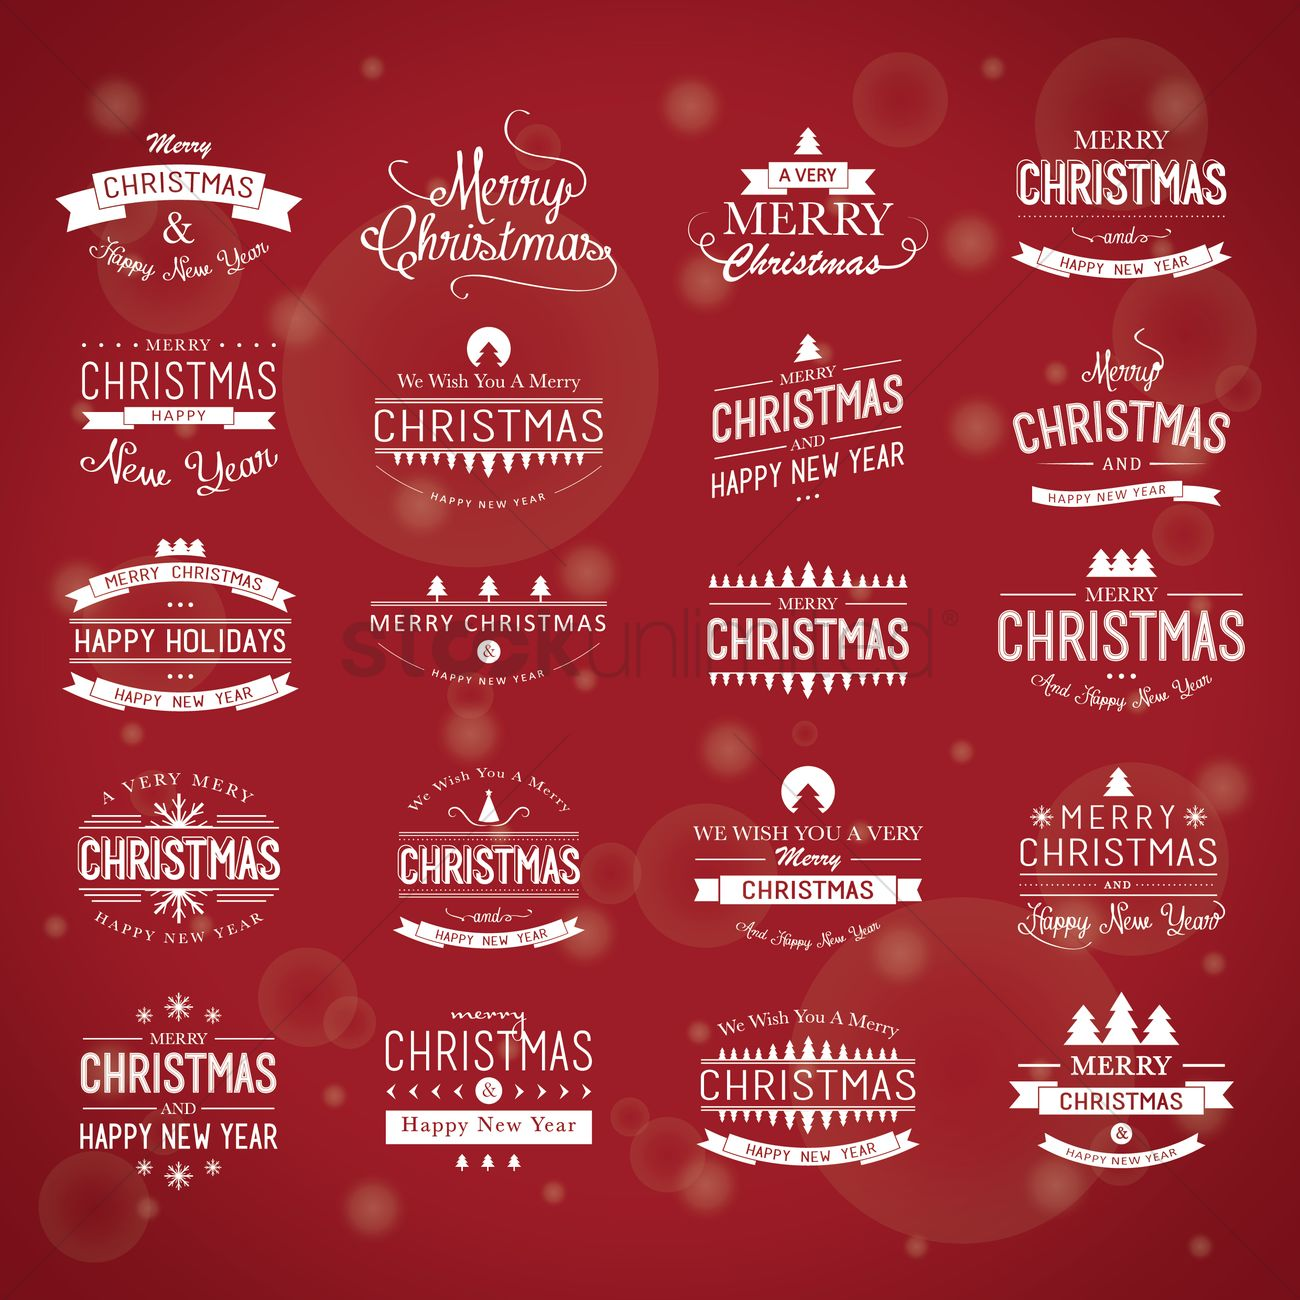 Set Of Merry Christmas And Happy New Year Greetings Vector Image